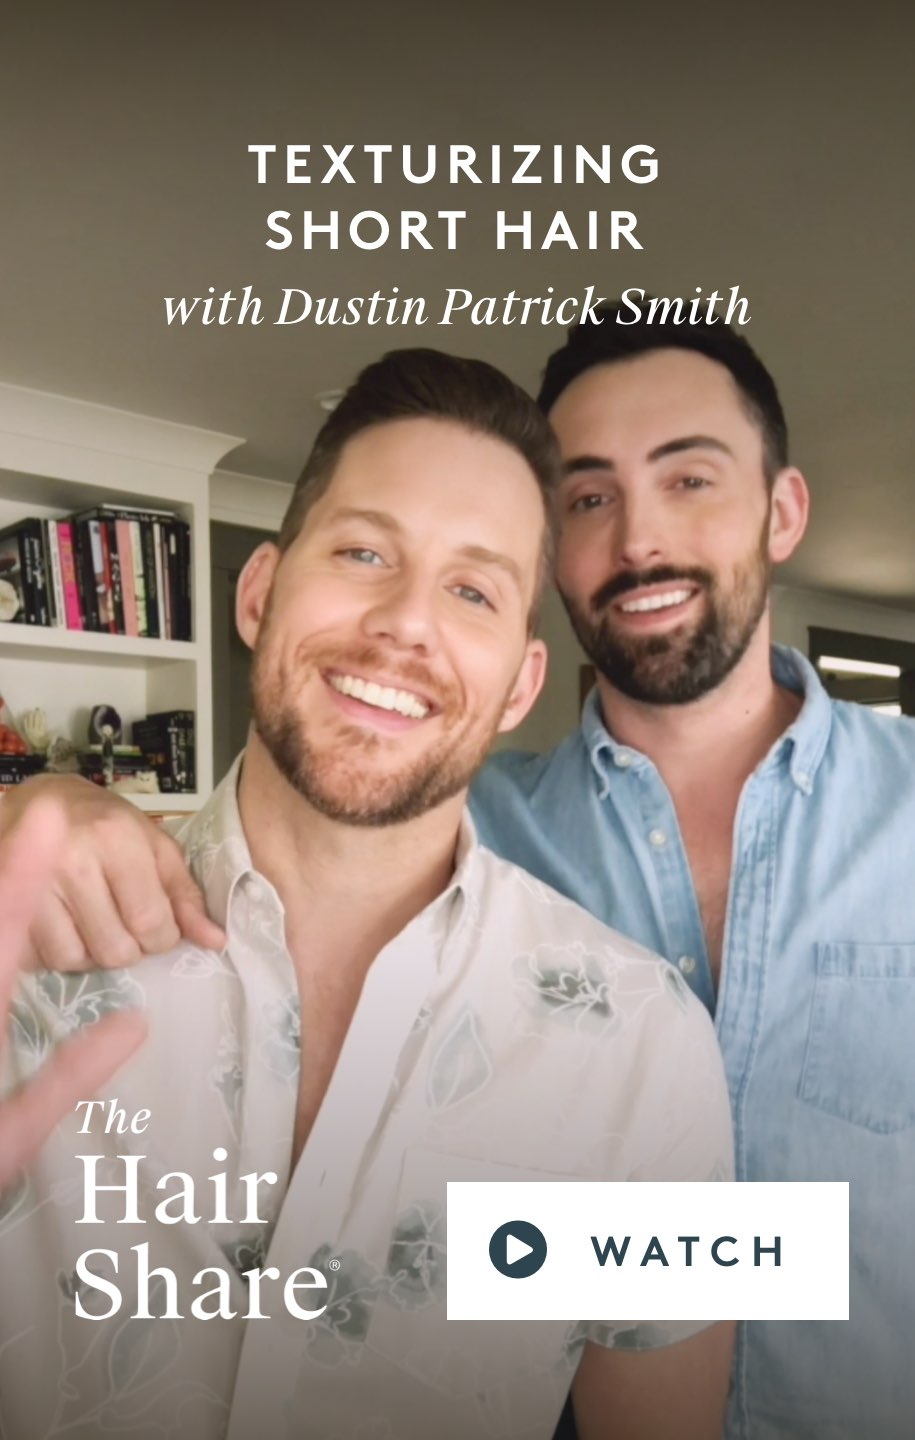 Texturizing Short Hair with Dustin Patrick Smith